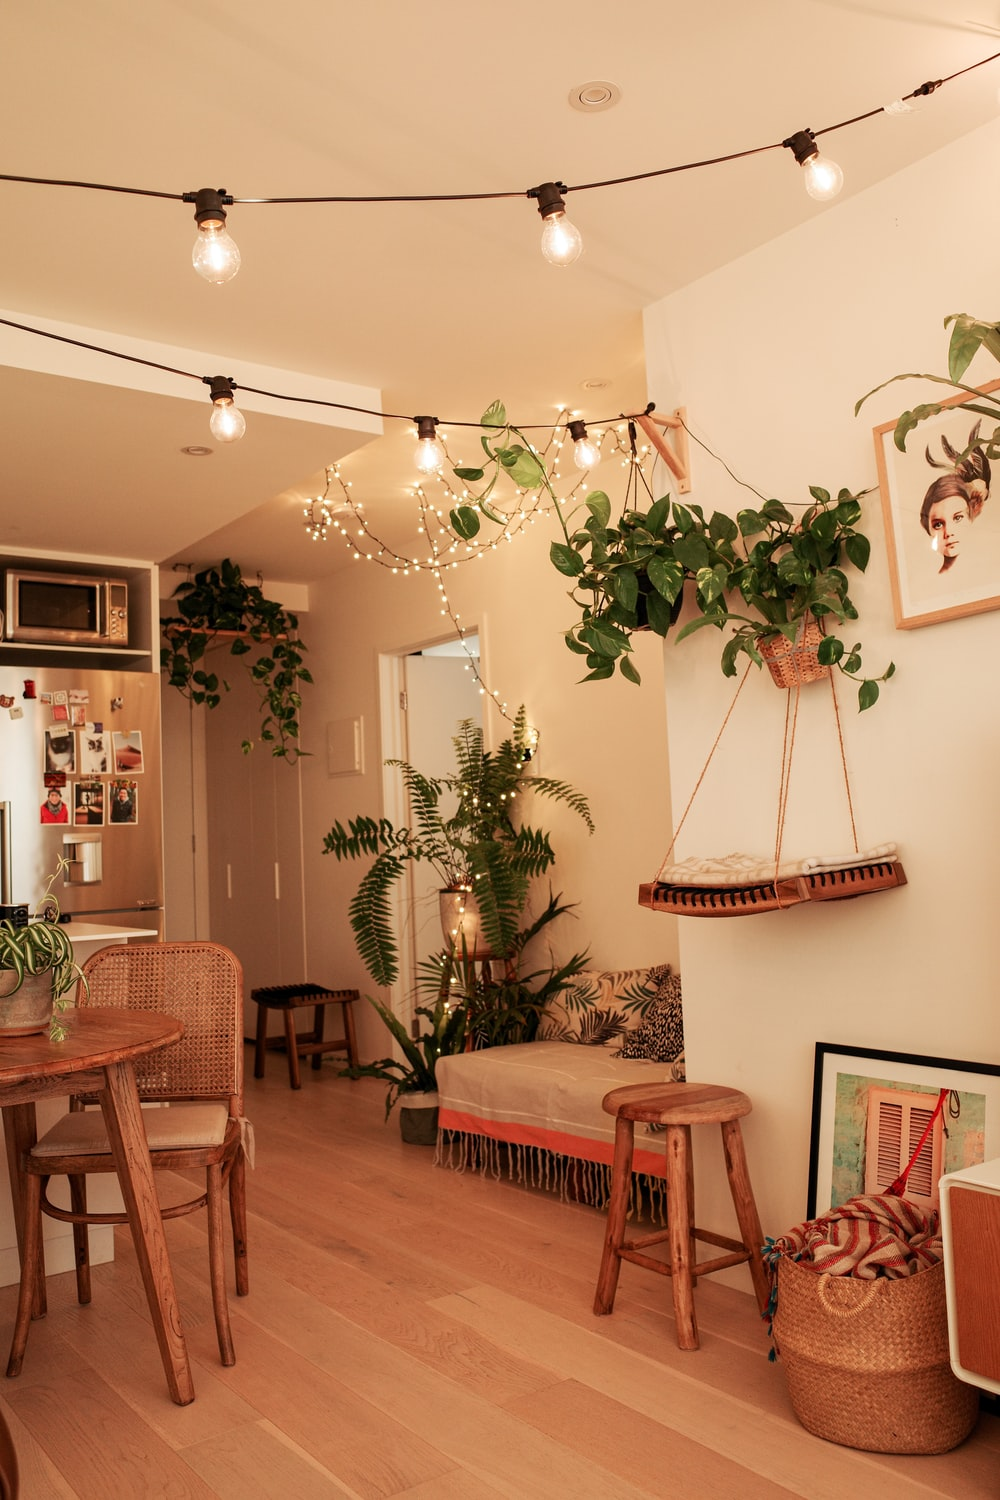 green indoor plant near brown wooden table